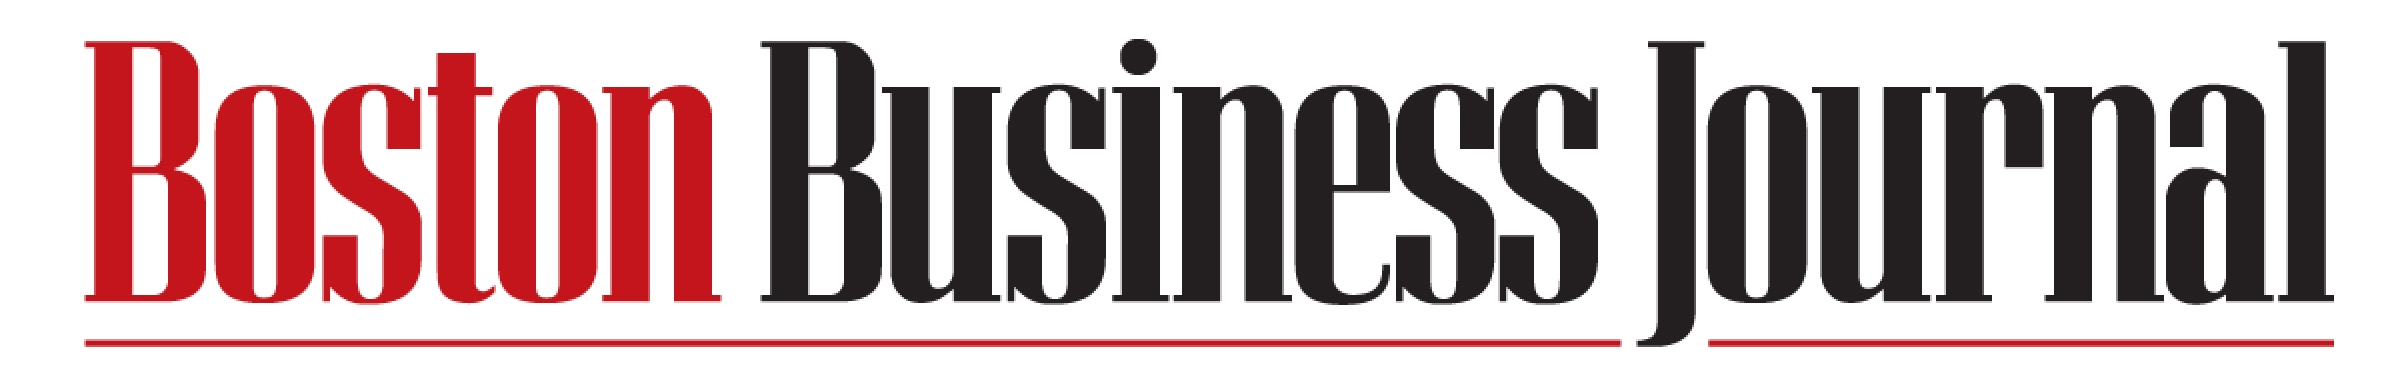 IPN Editorial Briefing Trip to the Boston Business Journal